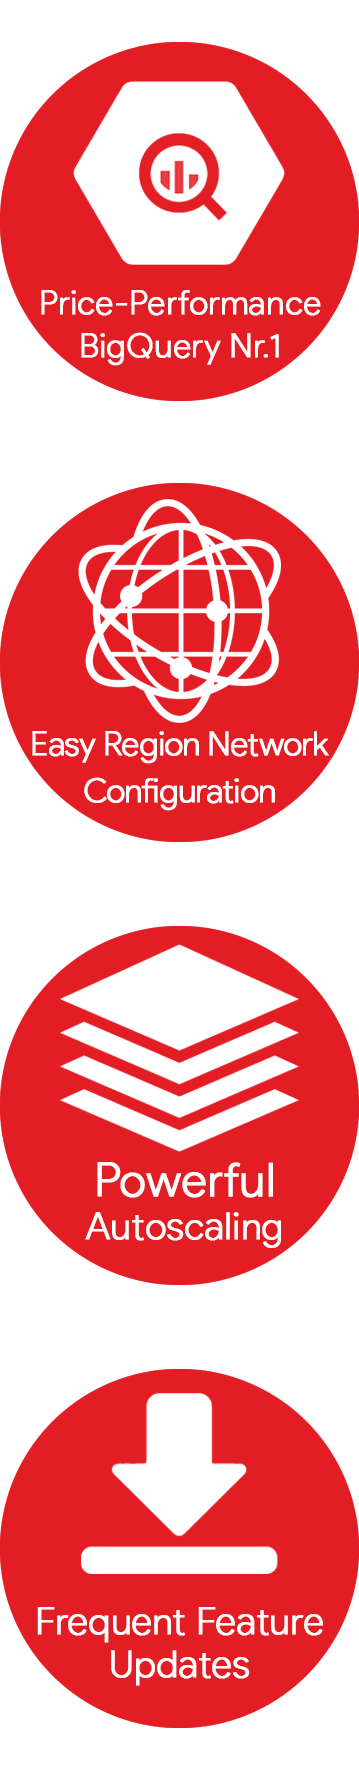 Badges highlighting number one price performance of BigQuery, easy region network configuration, powerful autoscaling and frequent feature updates.